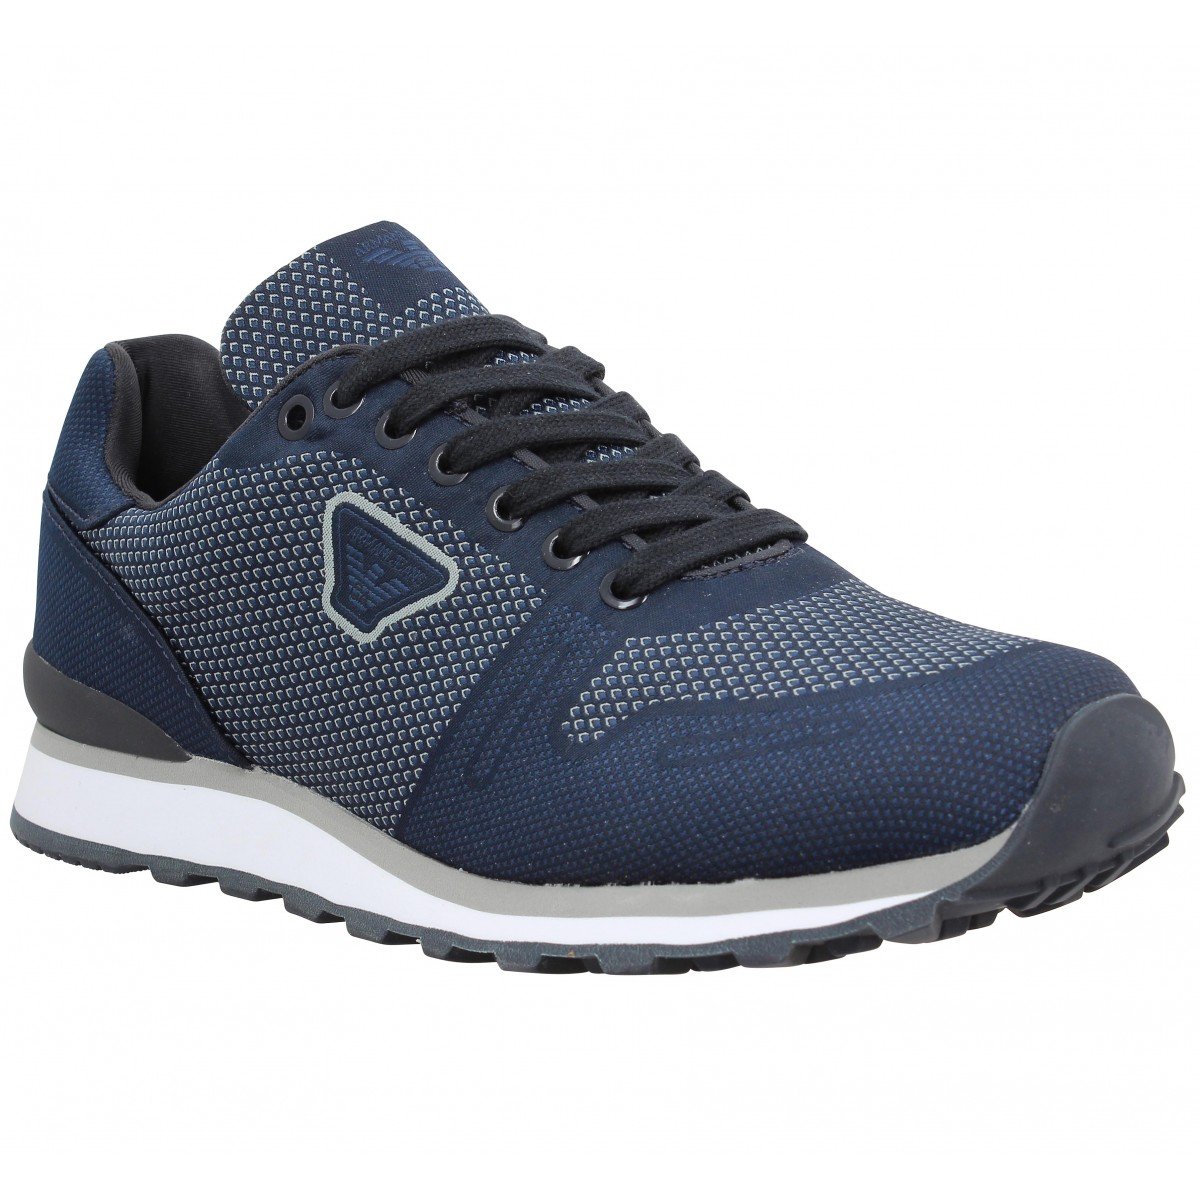 a42aa9f3f8a507 Armani jeans 9326 homme bleu homme | Fanny chaussures